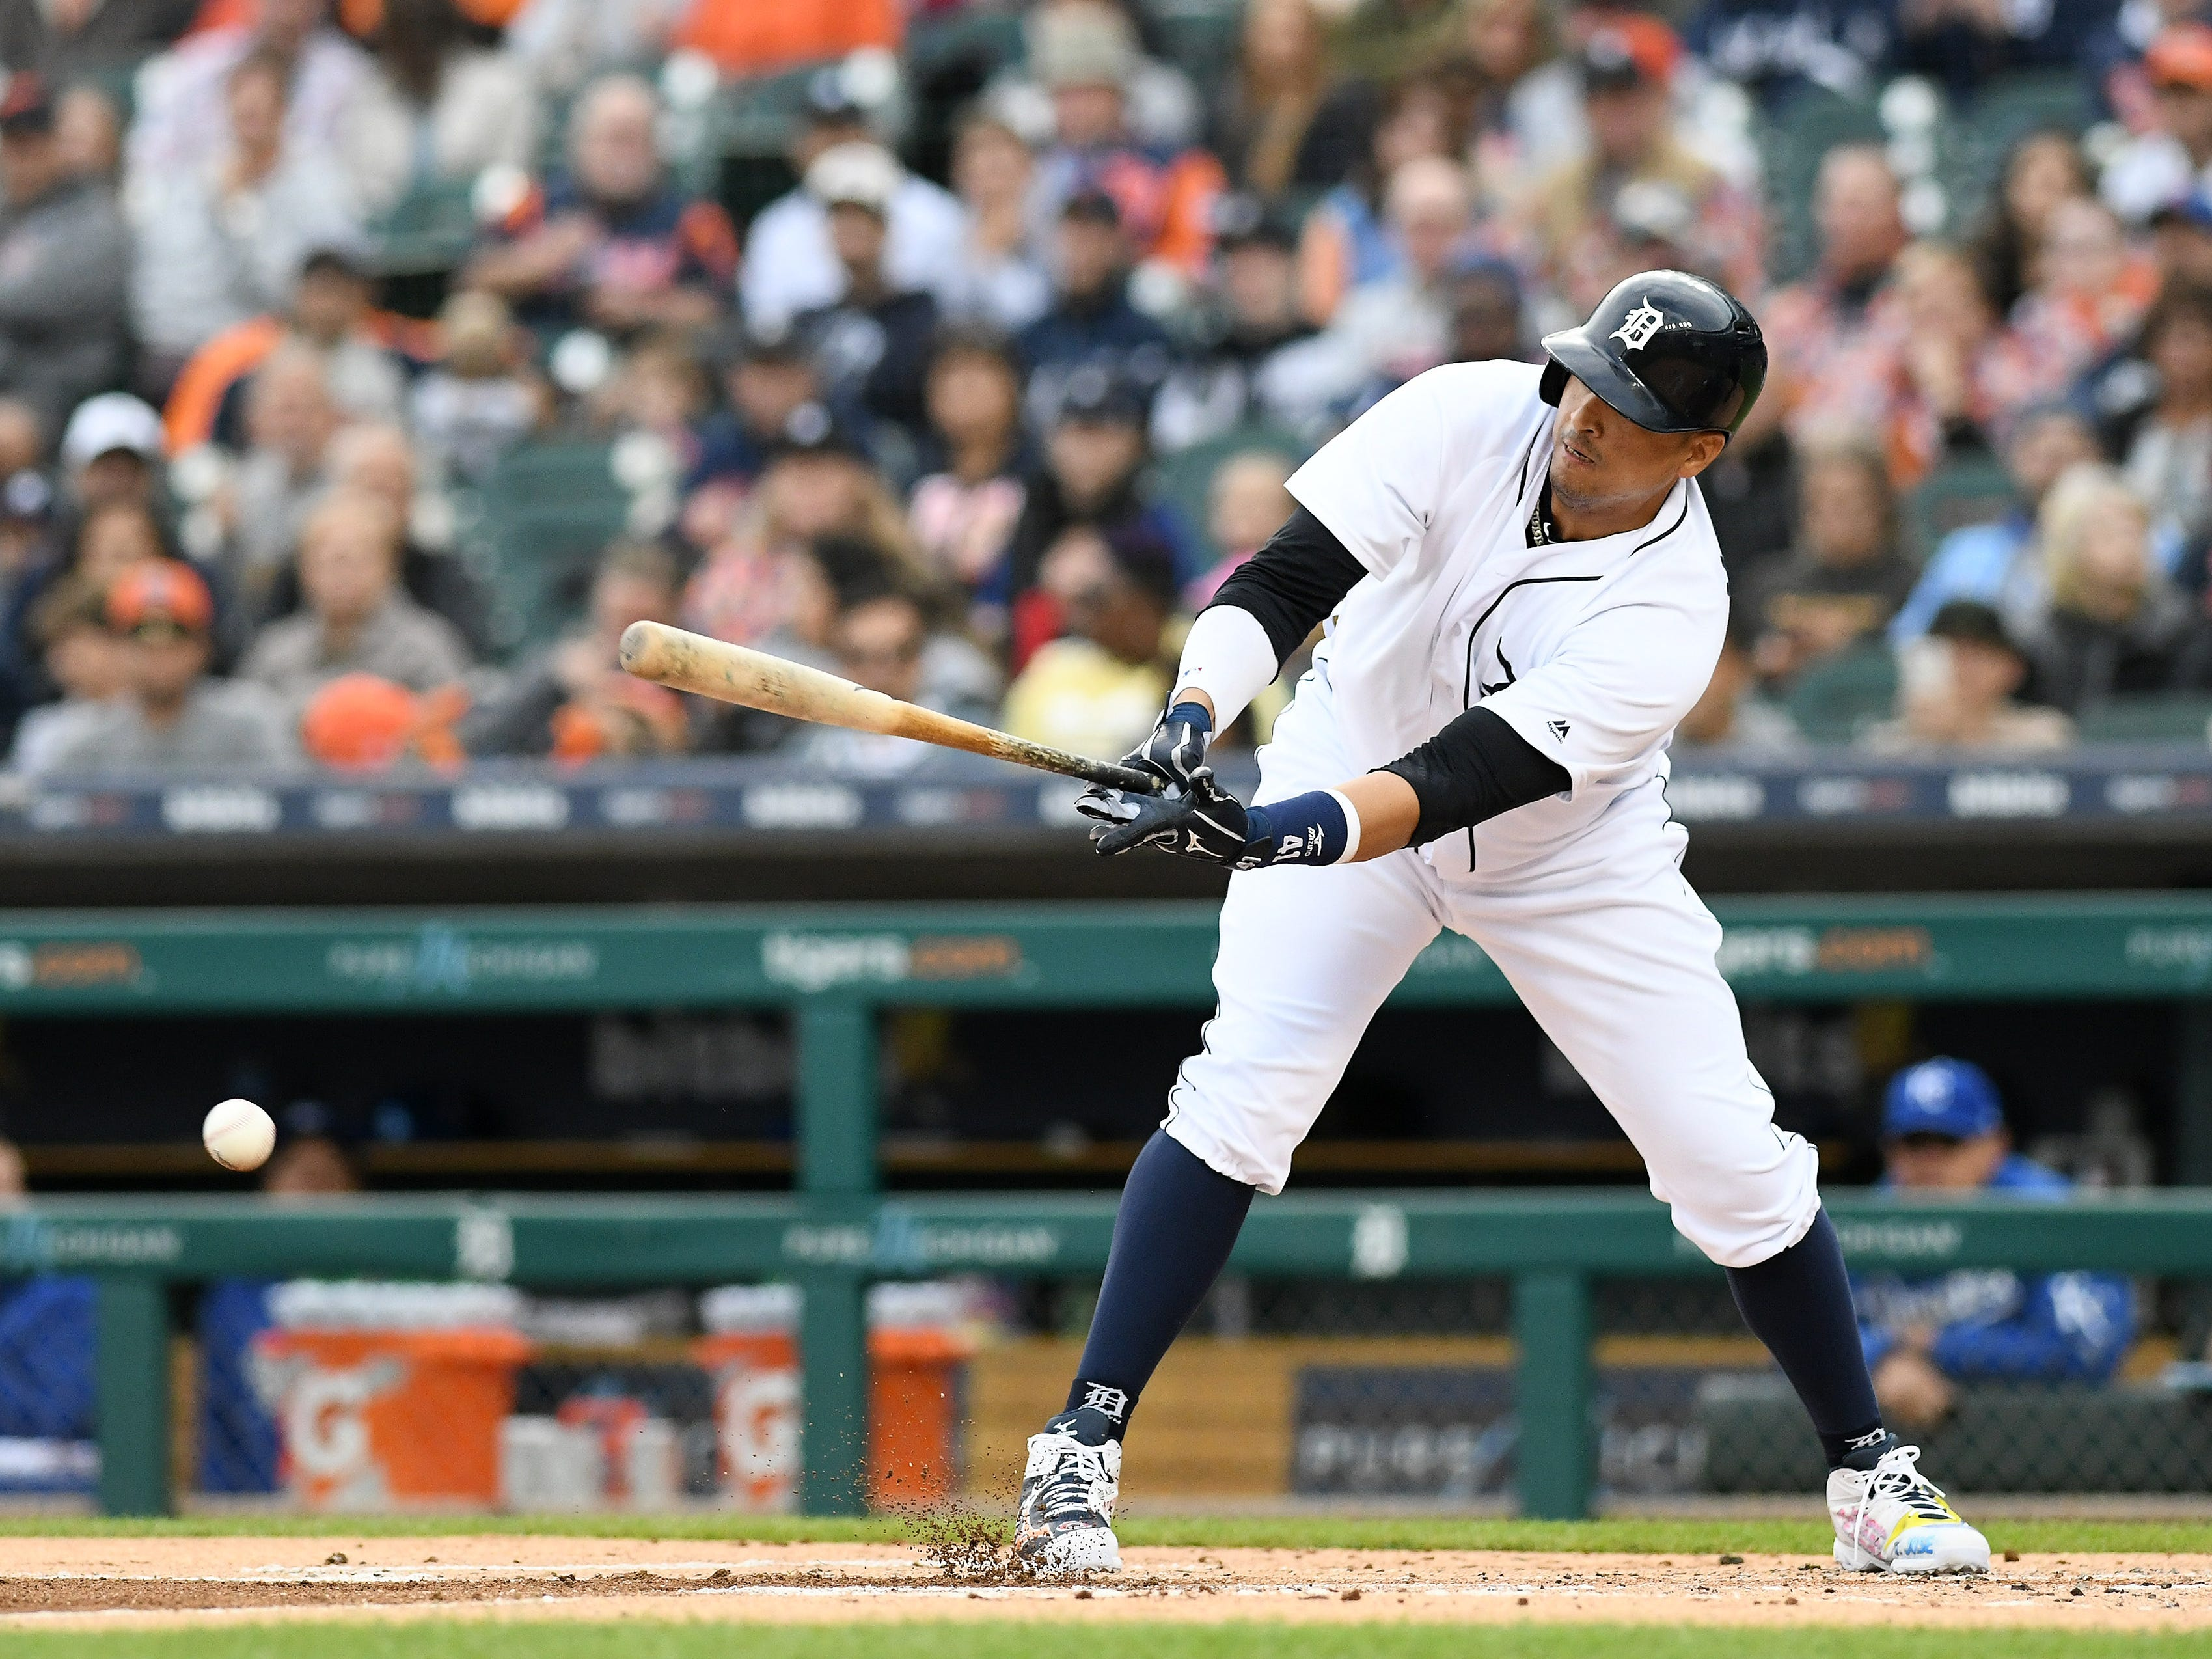 Tigers' Victor Martinez singles in the first inning for the final bat of his career.